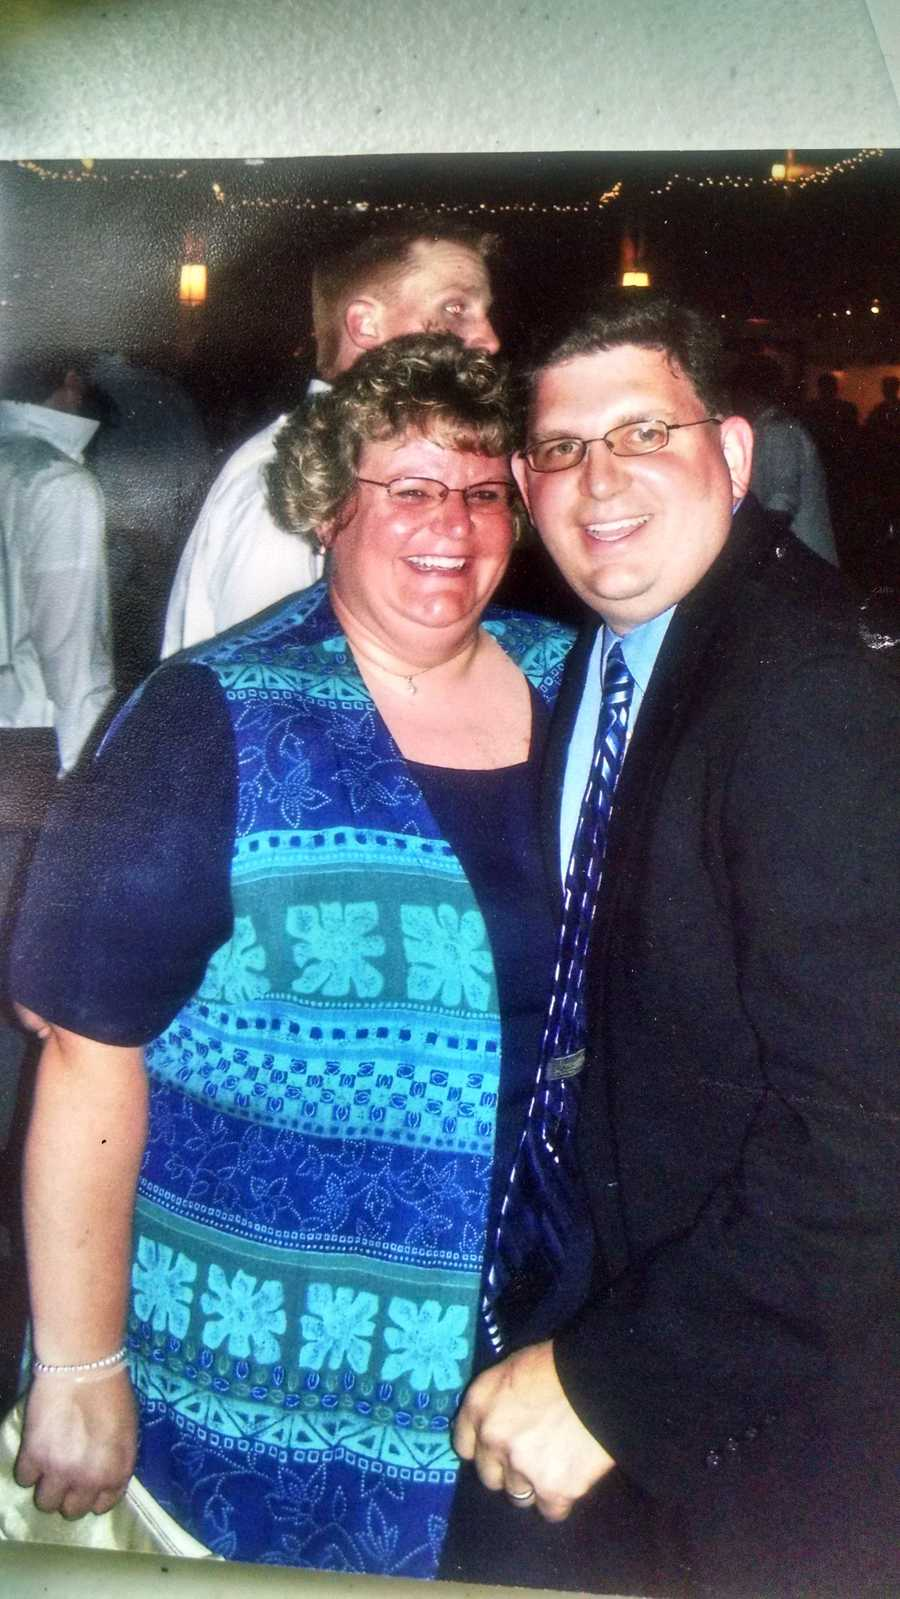 Before and After: Jeanne and Jim Craley transformed their health through diet and exercise.